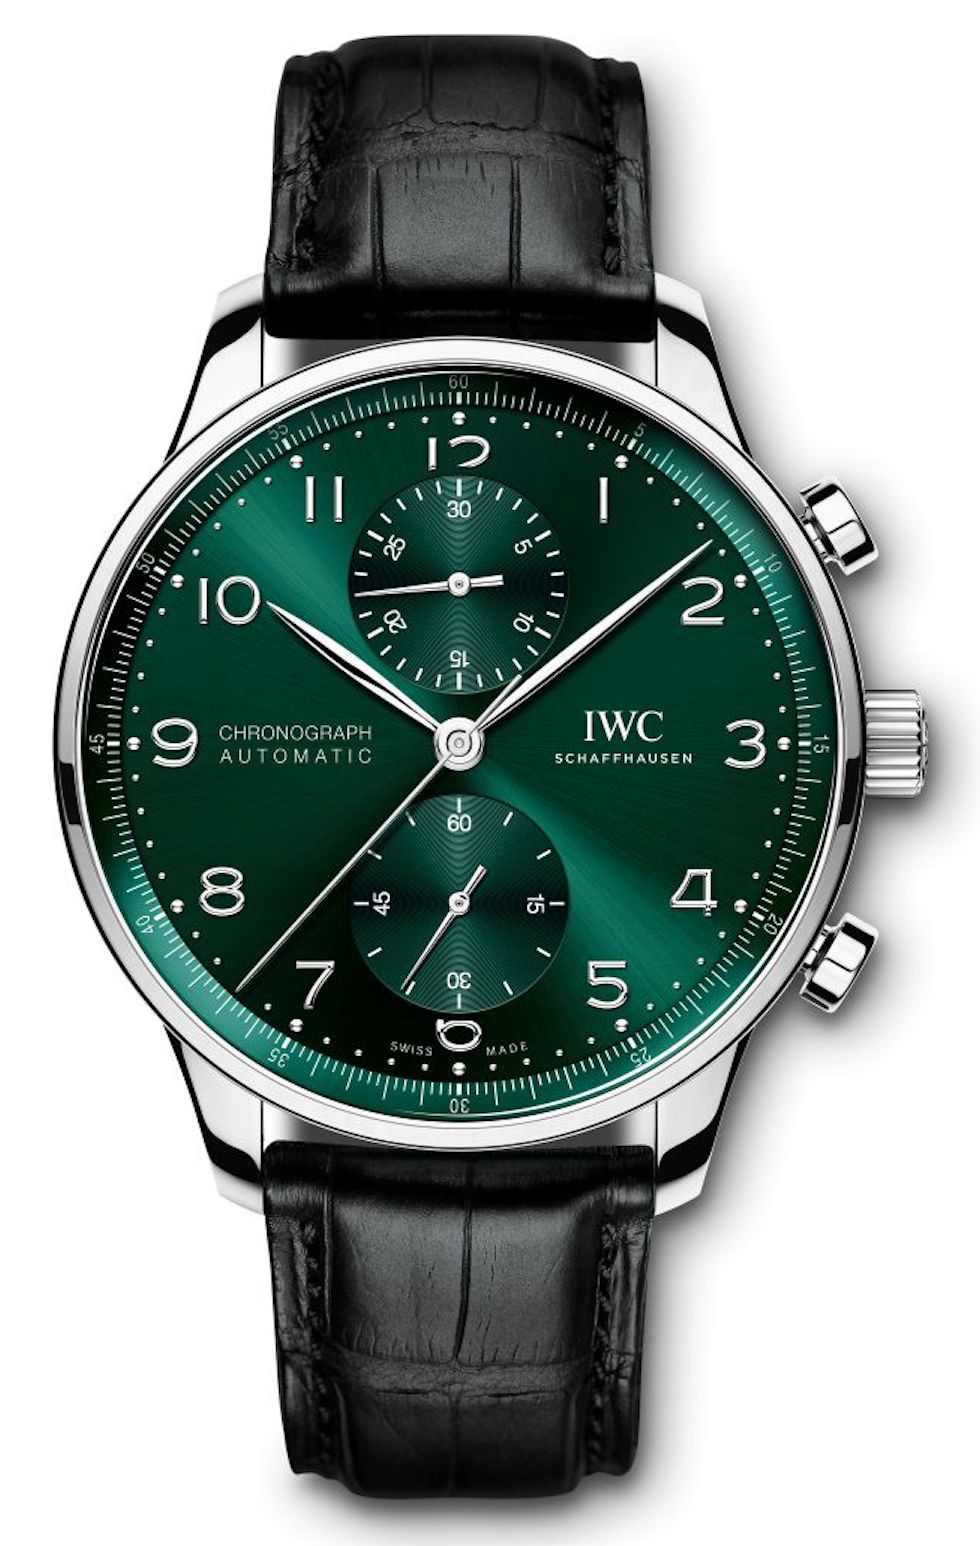 New IWC Portugieser Chronograph Watch models for 2020